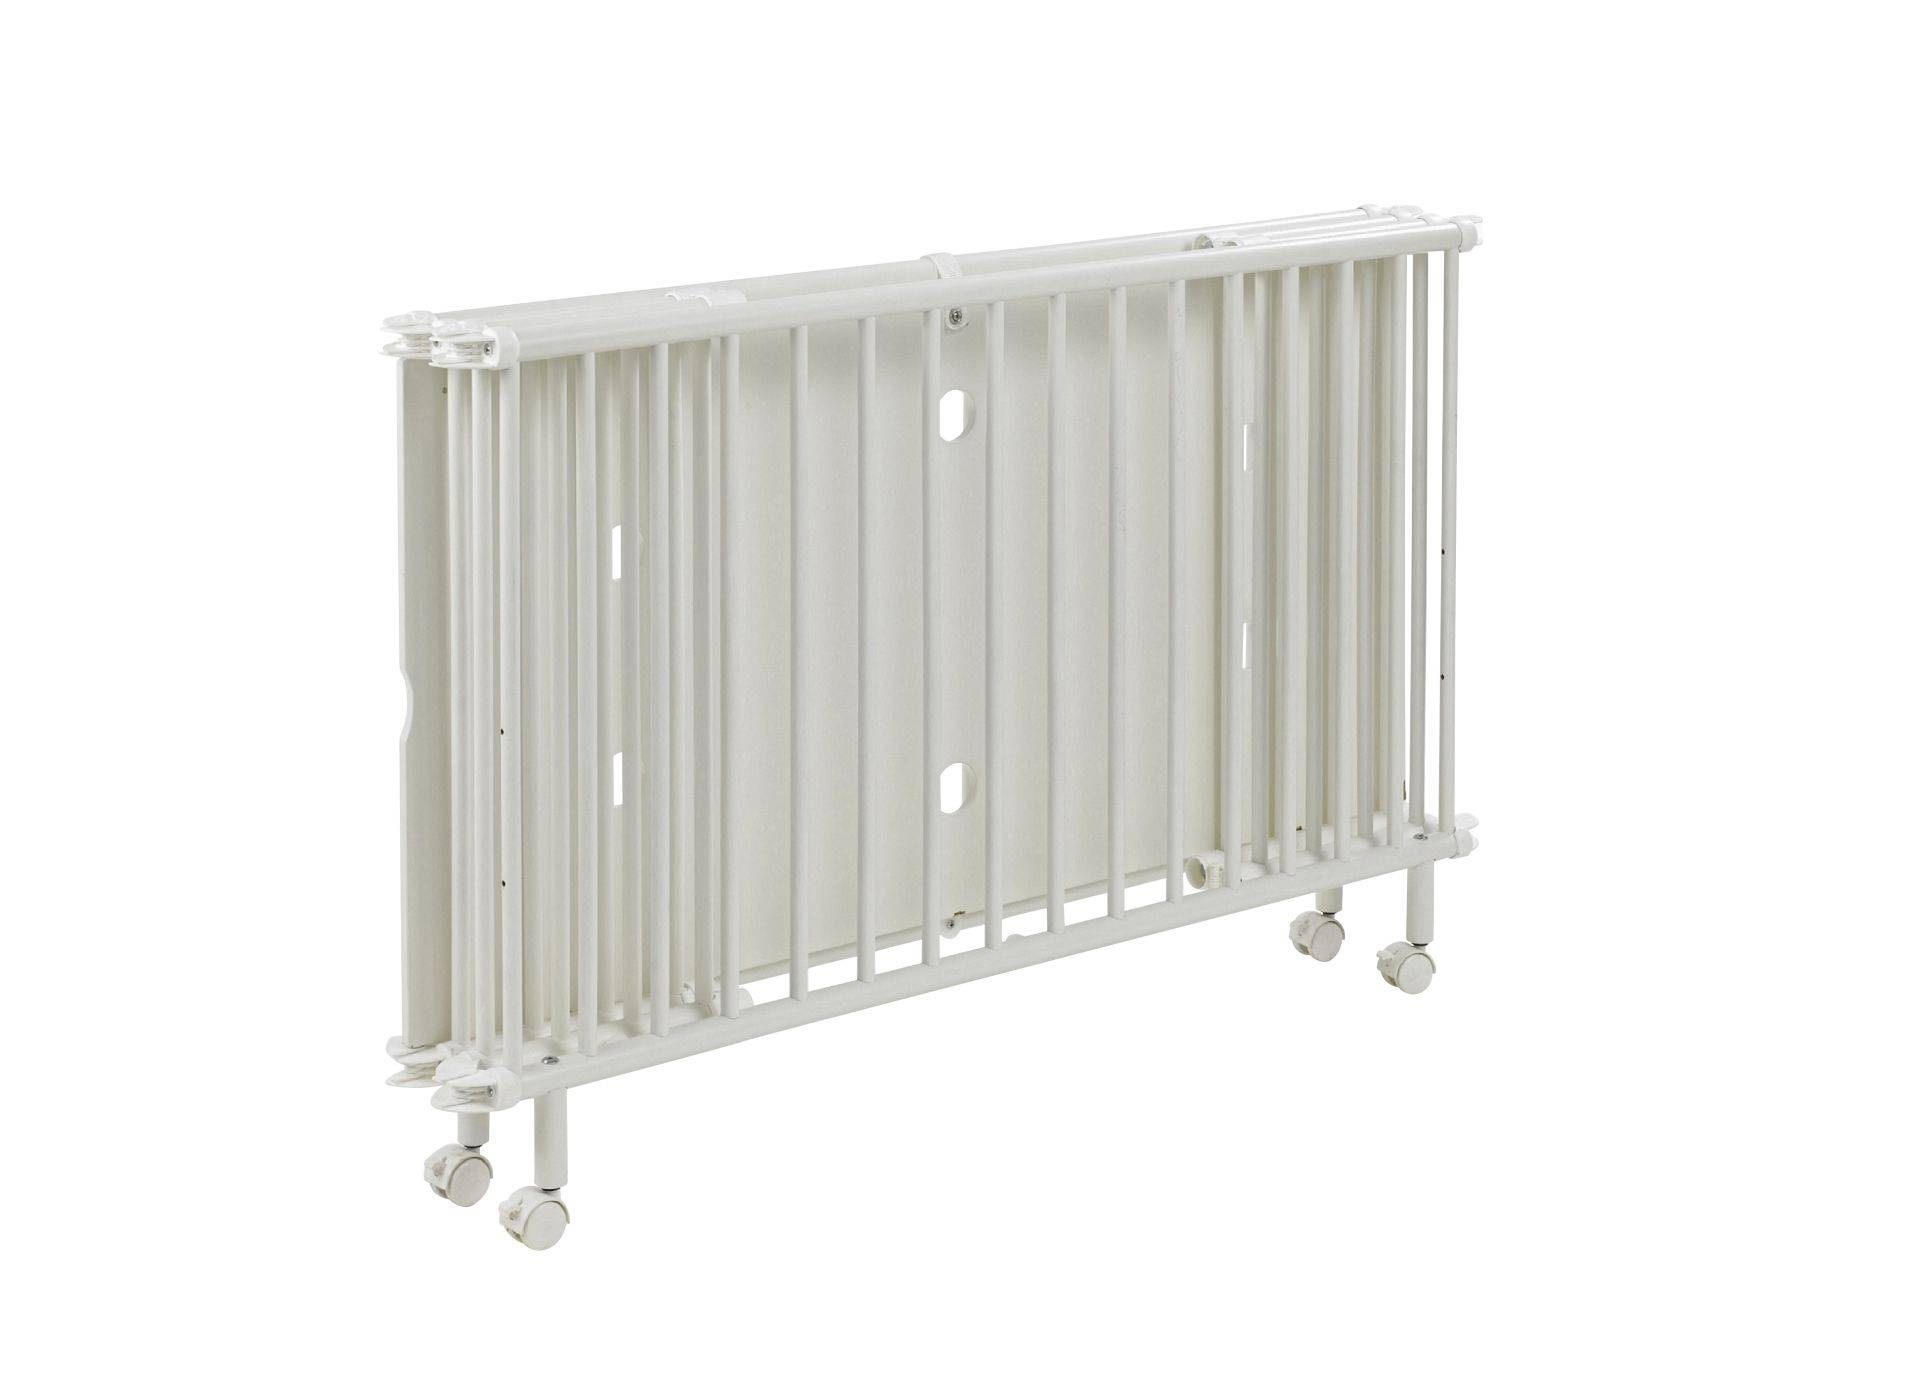 Geuther Mayla foldable child's bed; Weiß